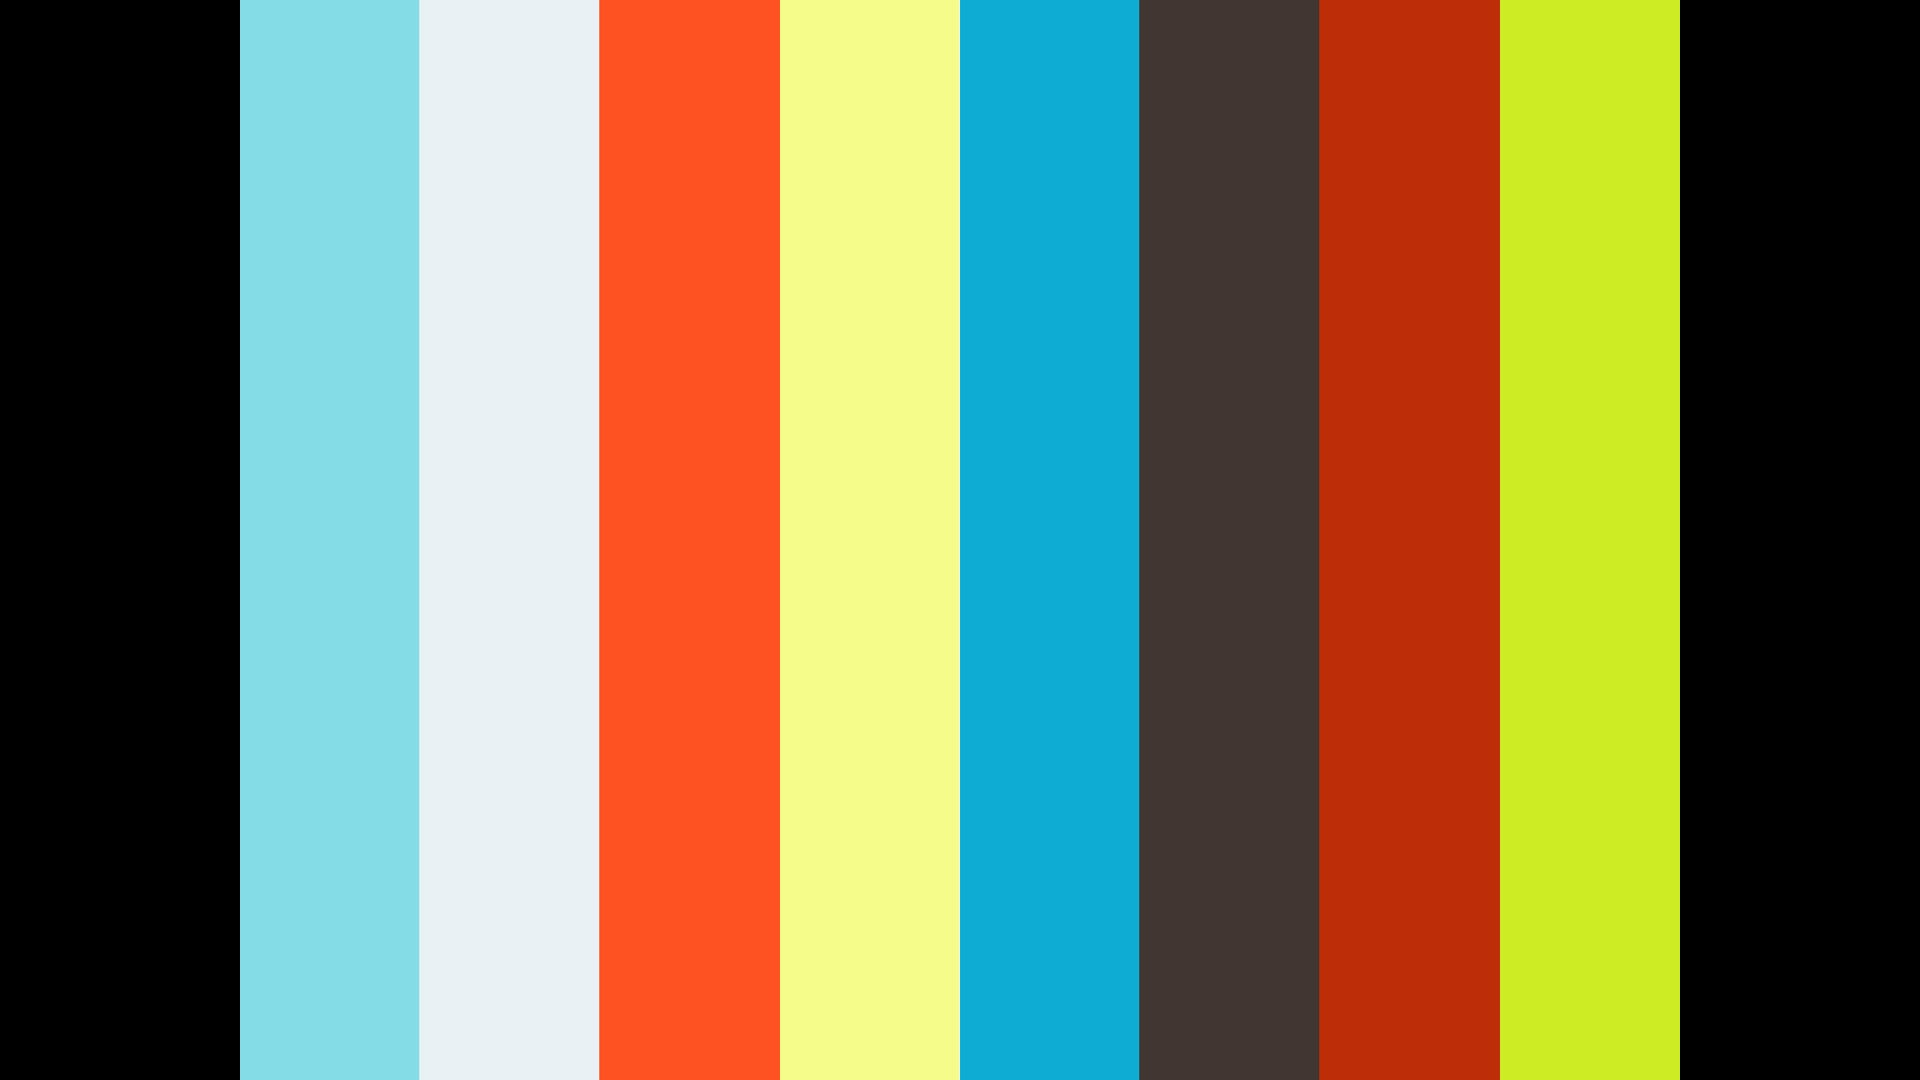 YOU AND ME - Micah P. Hinson. Isolation Dance film by Karni and Saul